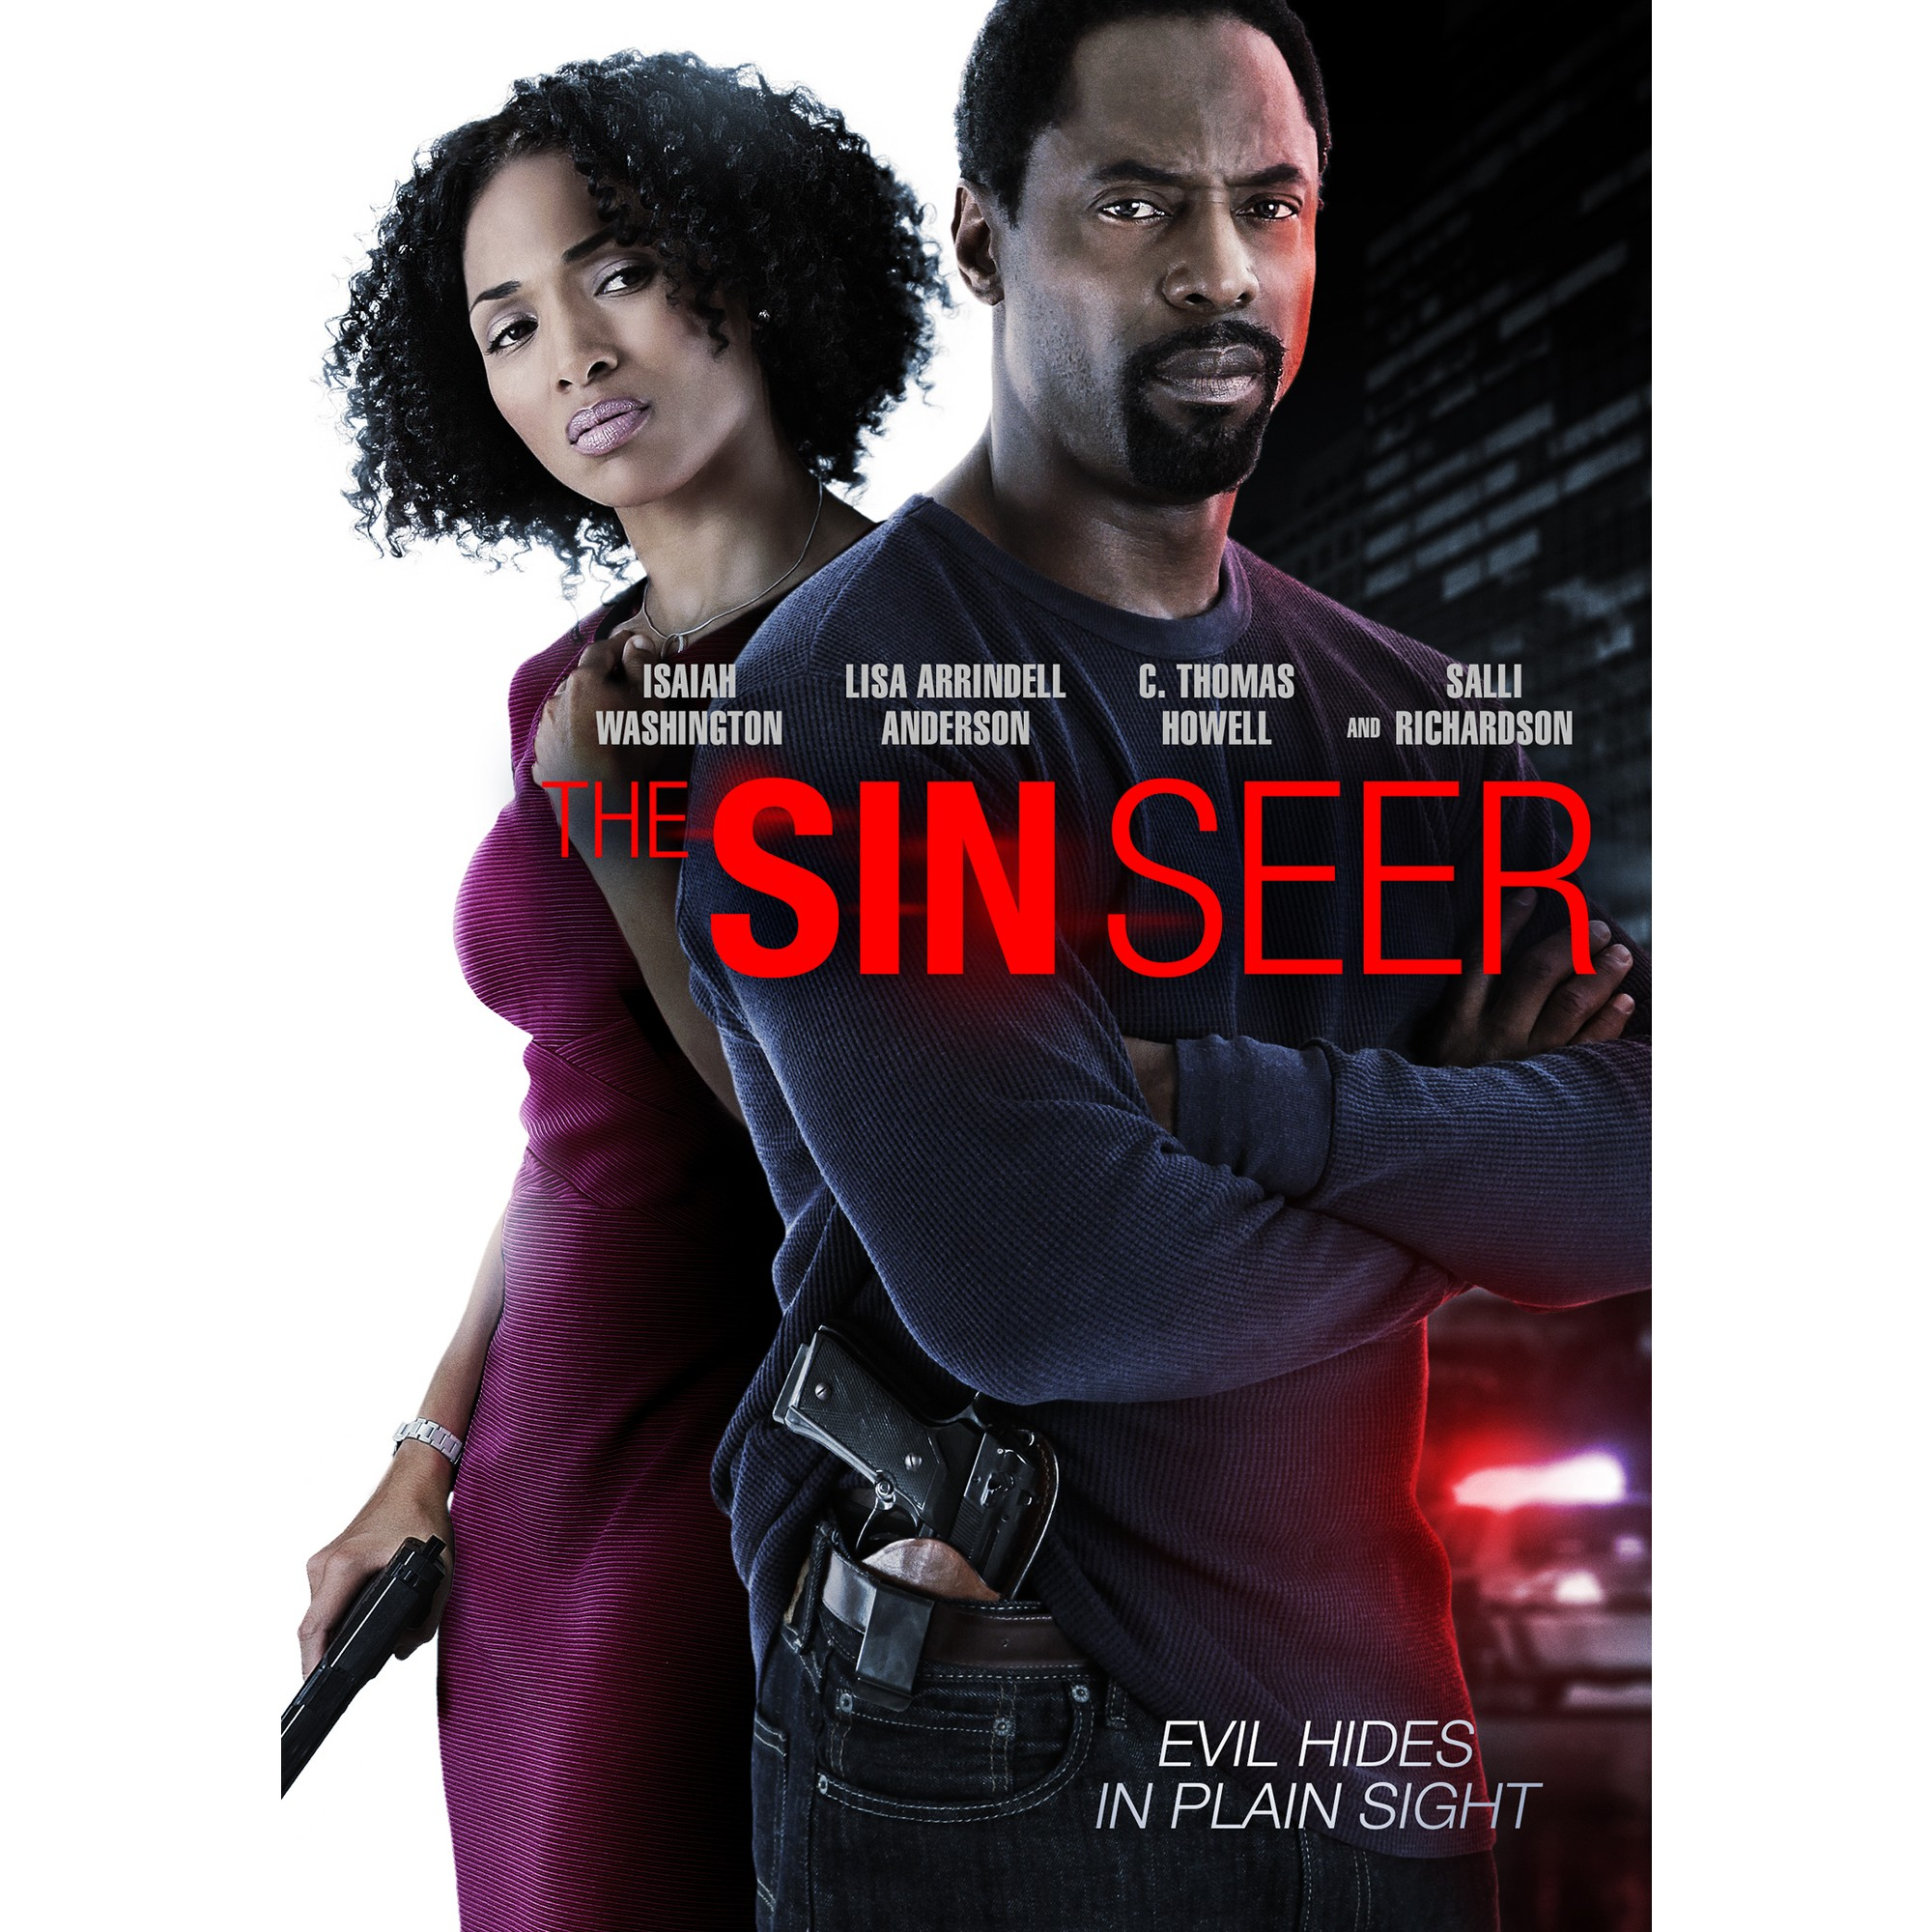 The Sin Seer Dvd Film Tape Isaiah Washington Video On Demand